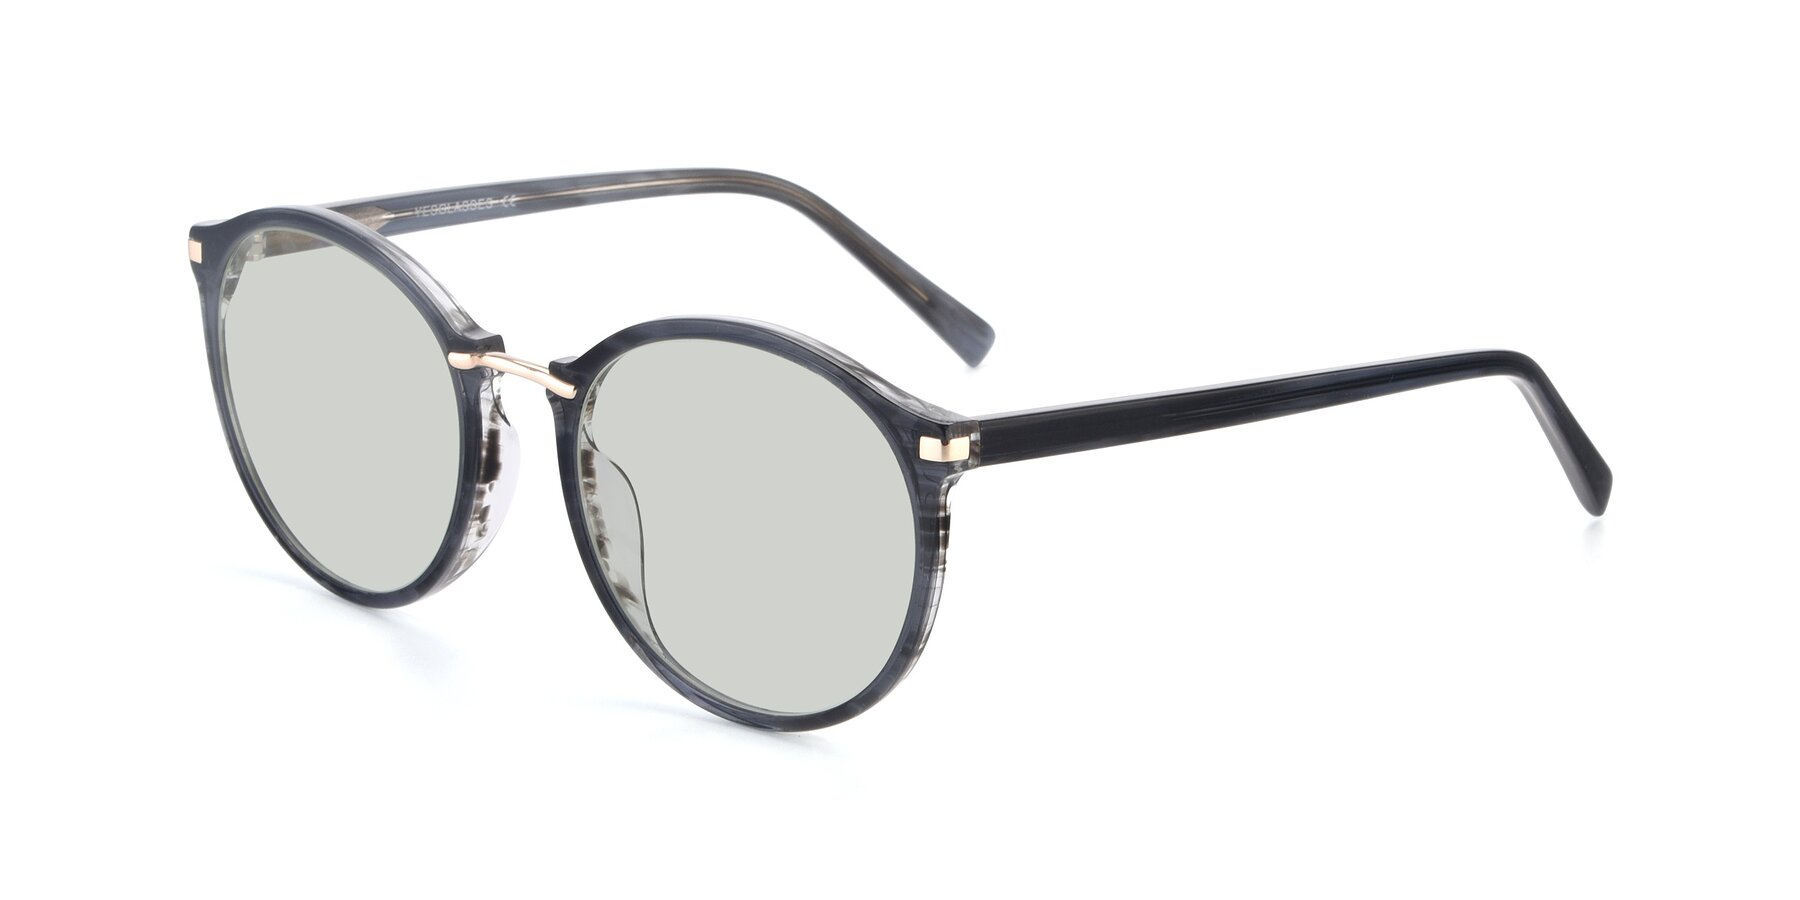 Angle of 17582 in Translucent Black with Light Green Tinted Lenses